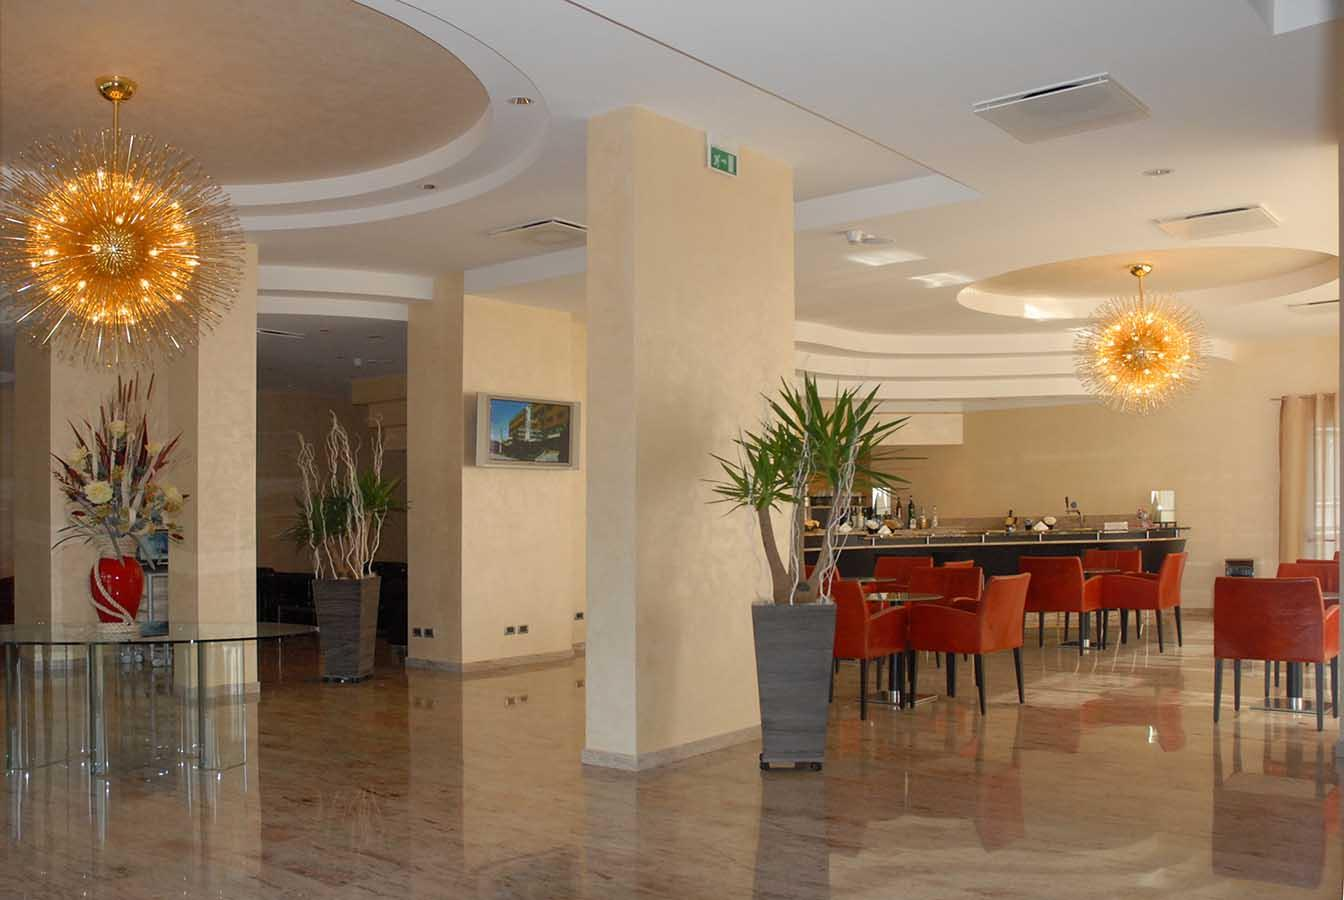 Hotel in Forlì - Hotel San Giorgio, Sure Hotel Collection by BW - Forlì